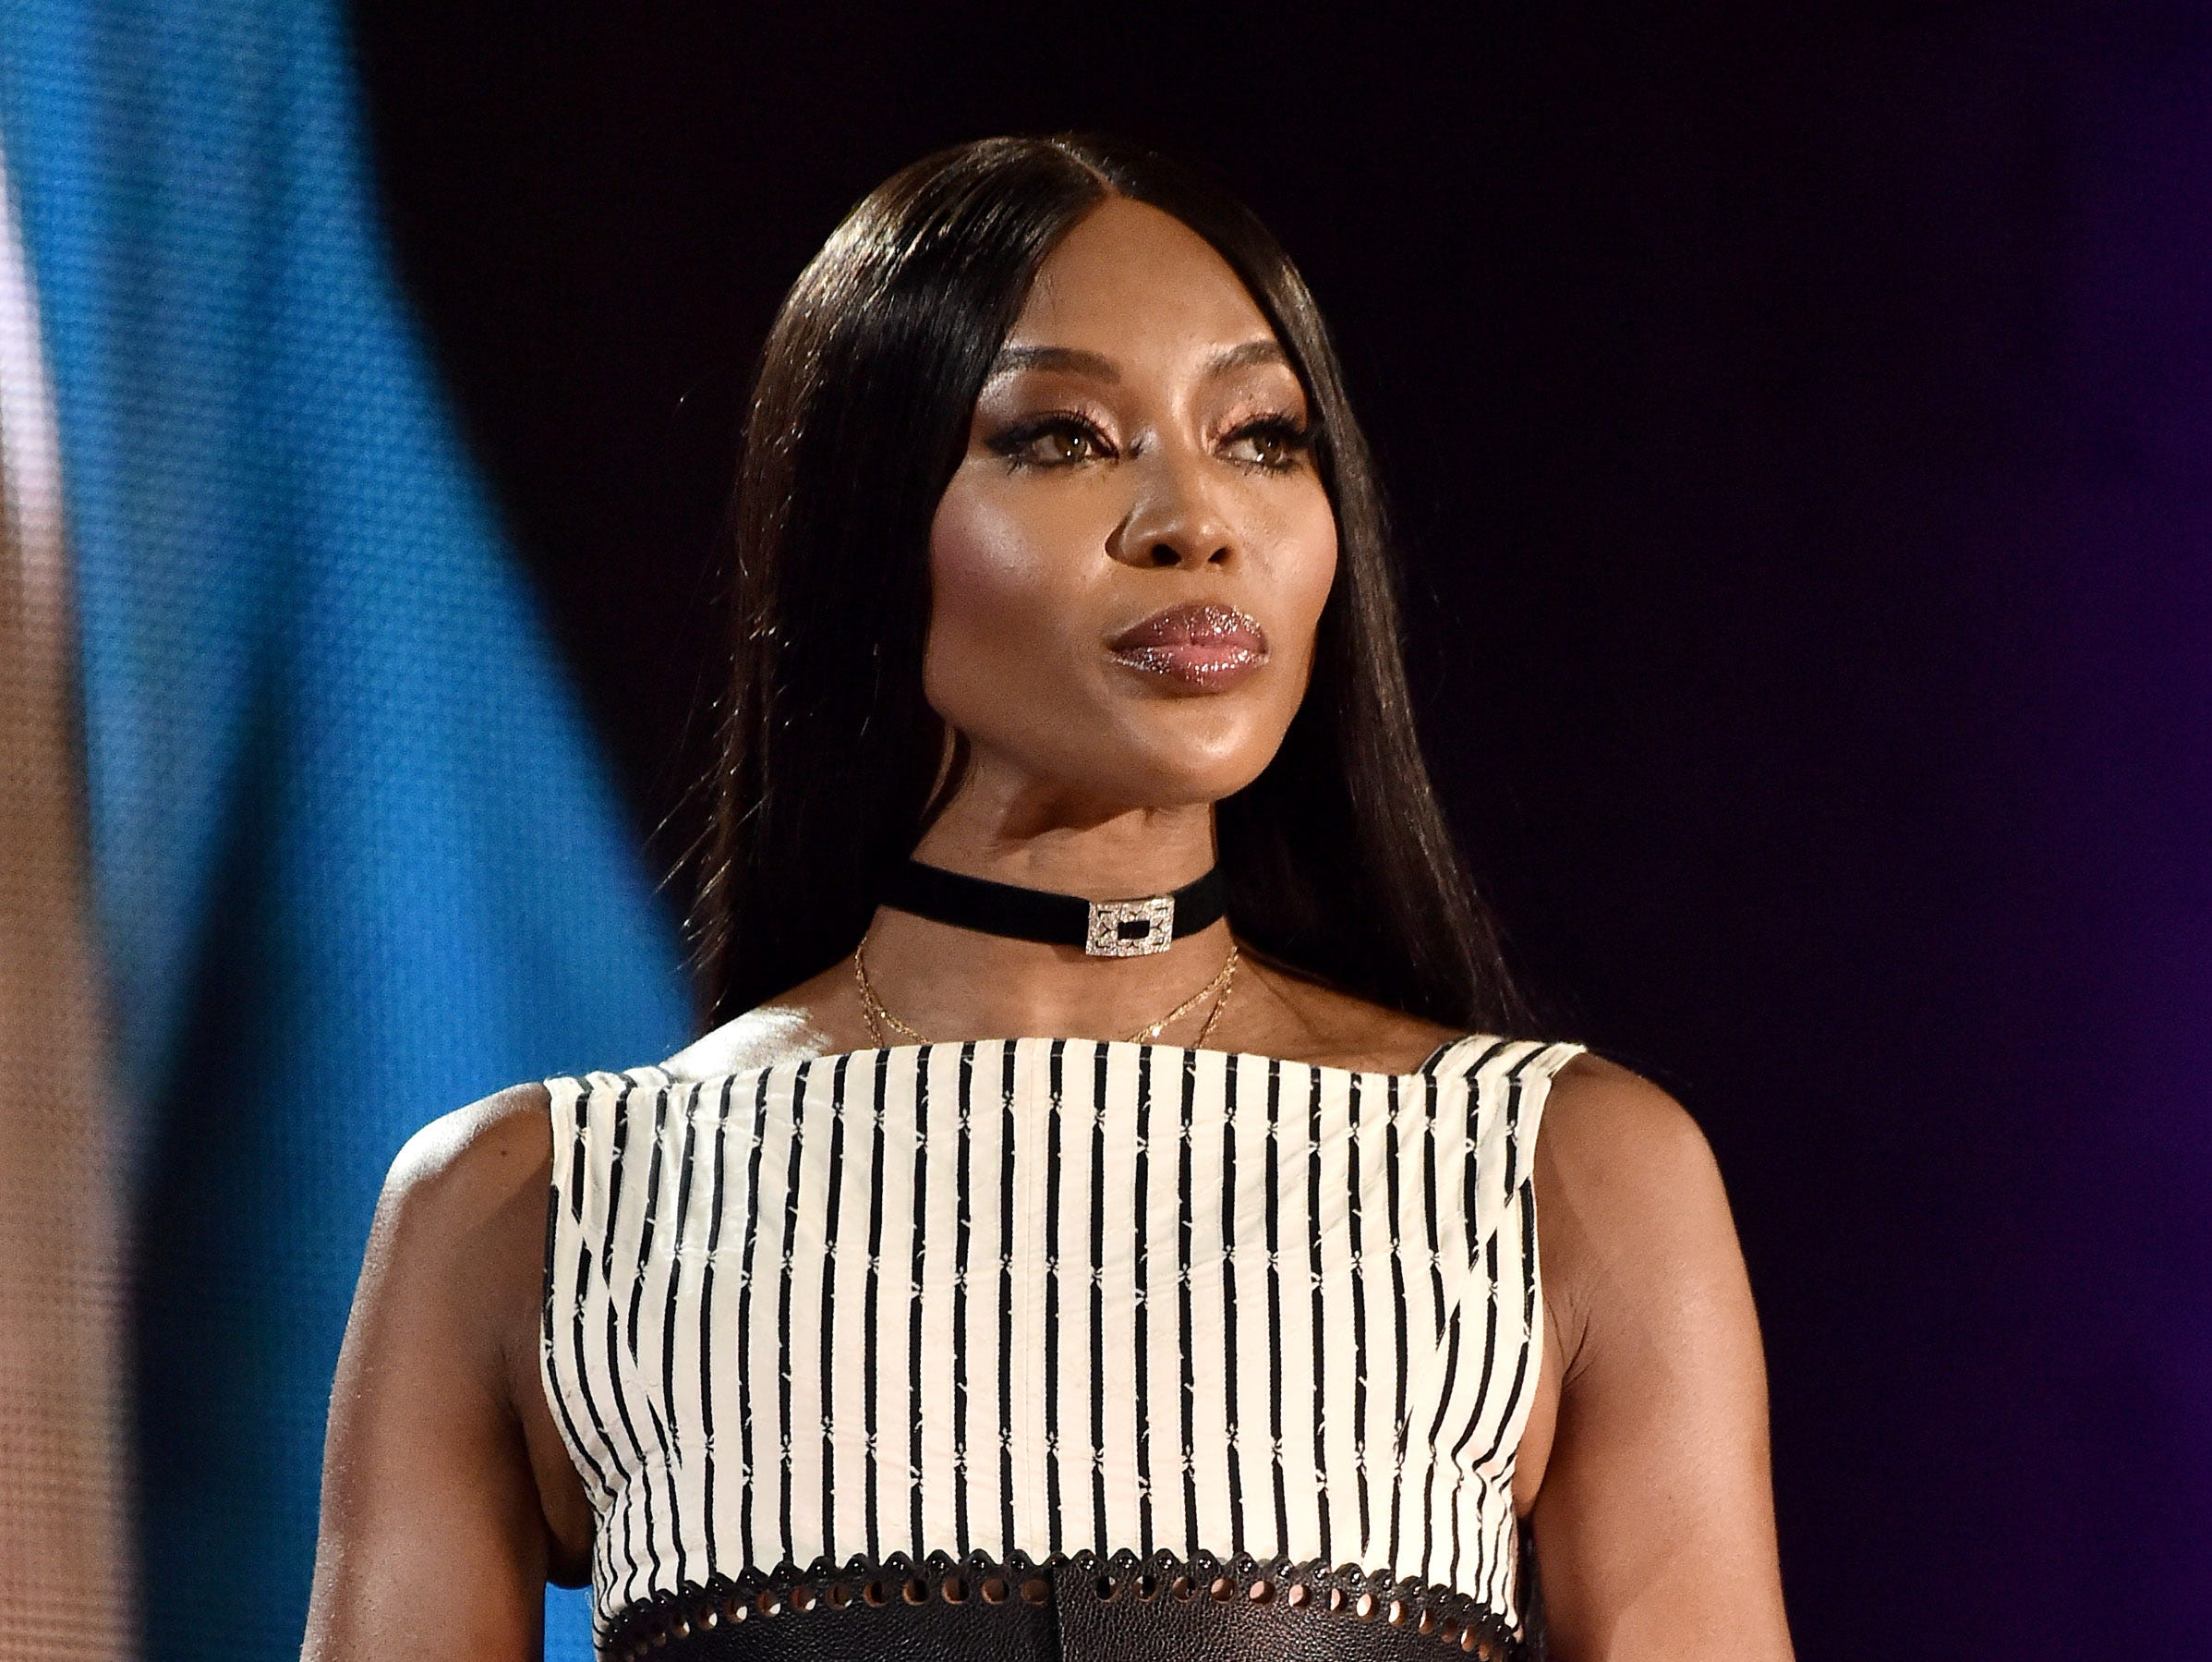 NEW YORK, NY - SEPTEMBER 29:  Naomi Campbell speaks onstage during the 2018 Global Citizen Concert at Central Park, Great Lawn on September 29, 2018 in New York City.  (Photo by Steven Ferdman/WireImage) ORG XMIT: 775224758 ORIG FILE ID: 1043278058